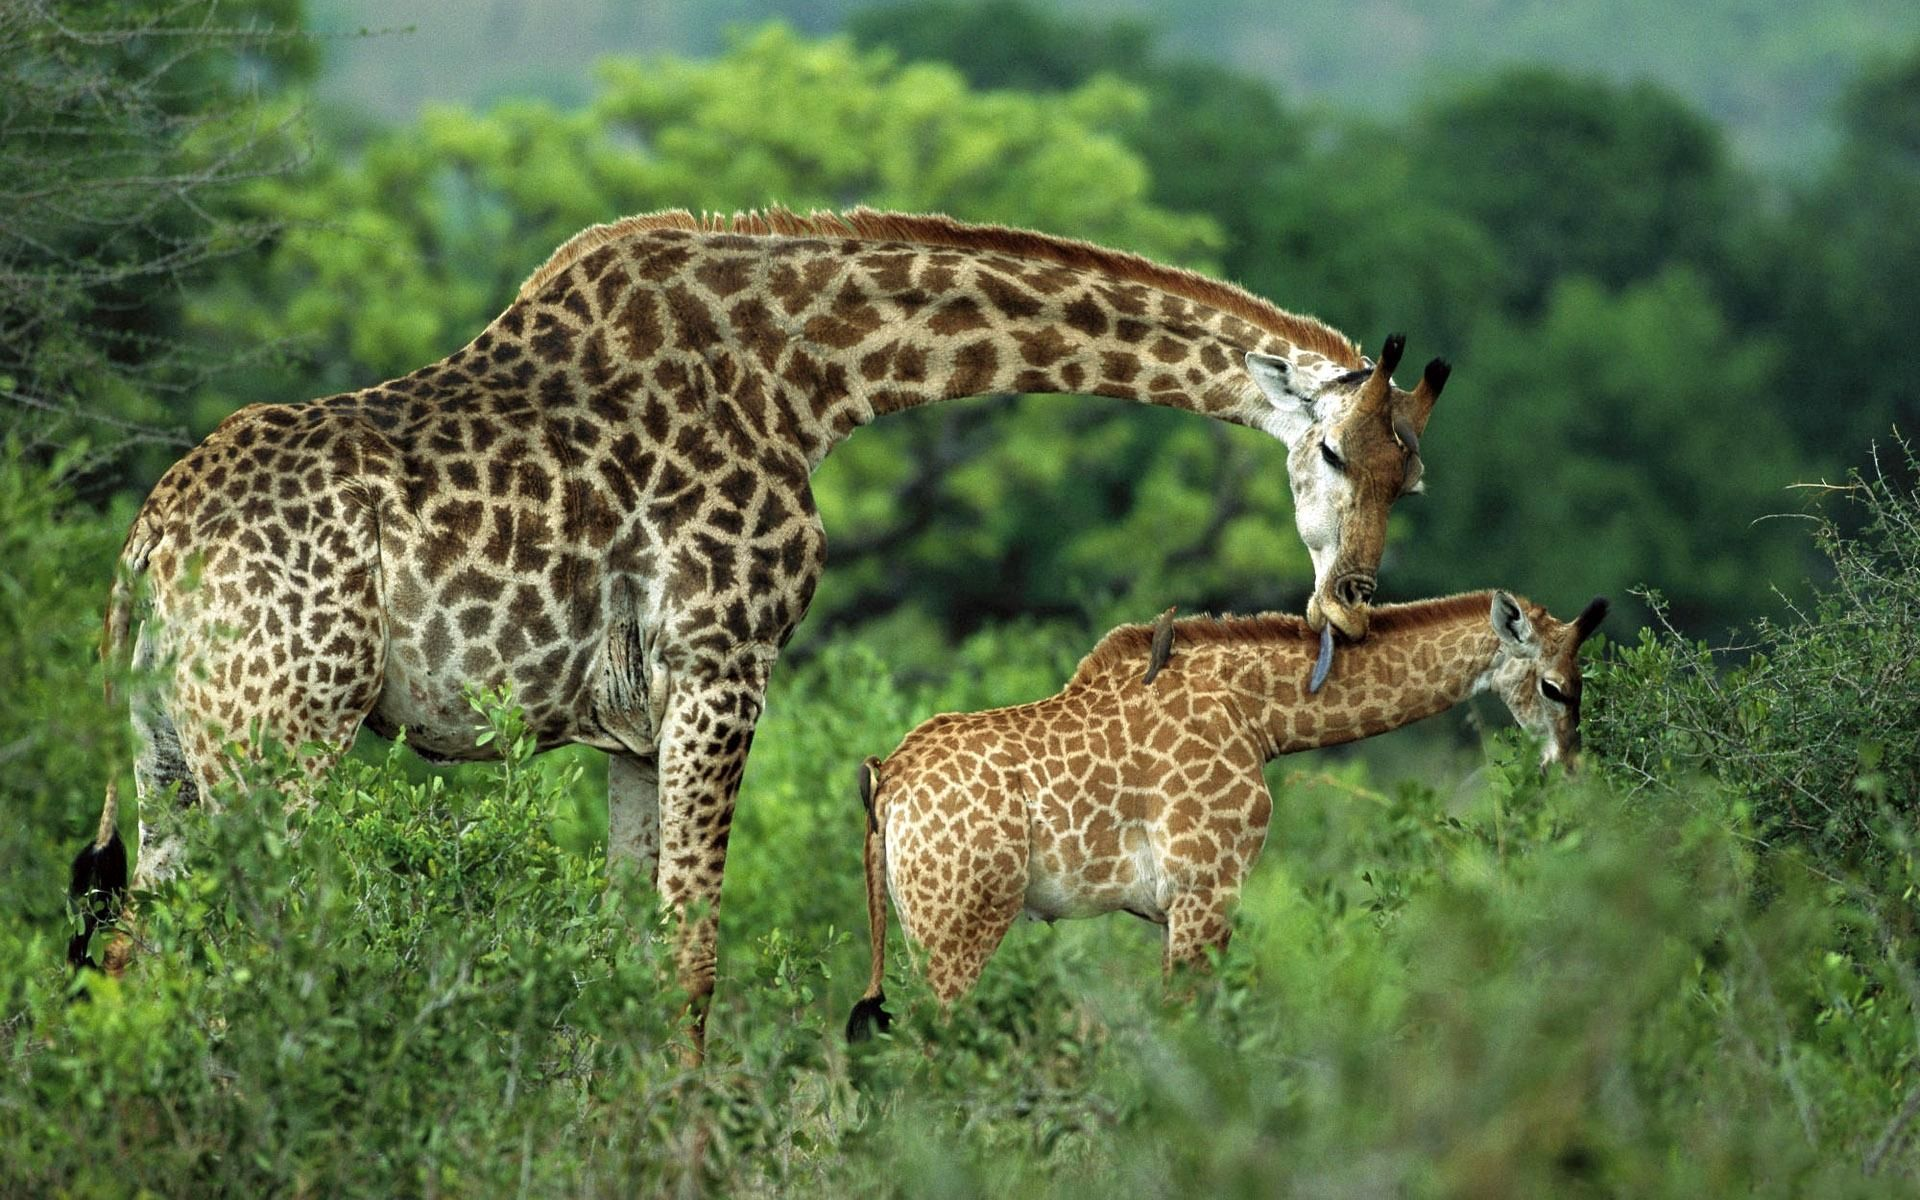 63987 download wallpaper Animals, Couple, Pair, Grass, Young, Joey, Care, Stroll, Giraffes screensavers and pictures for free